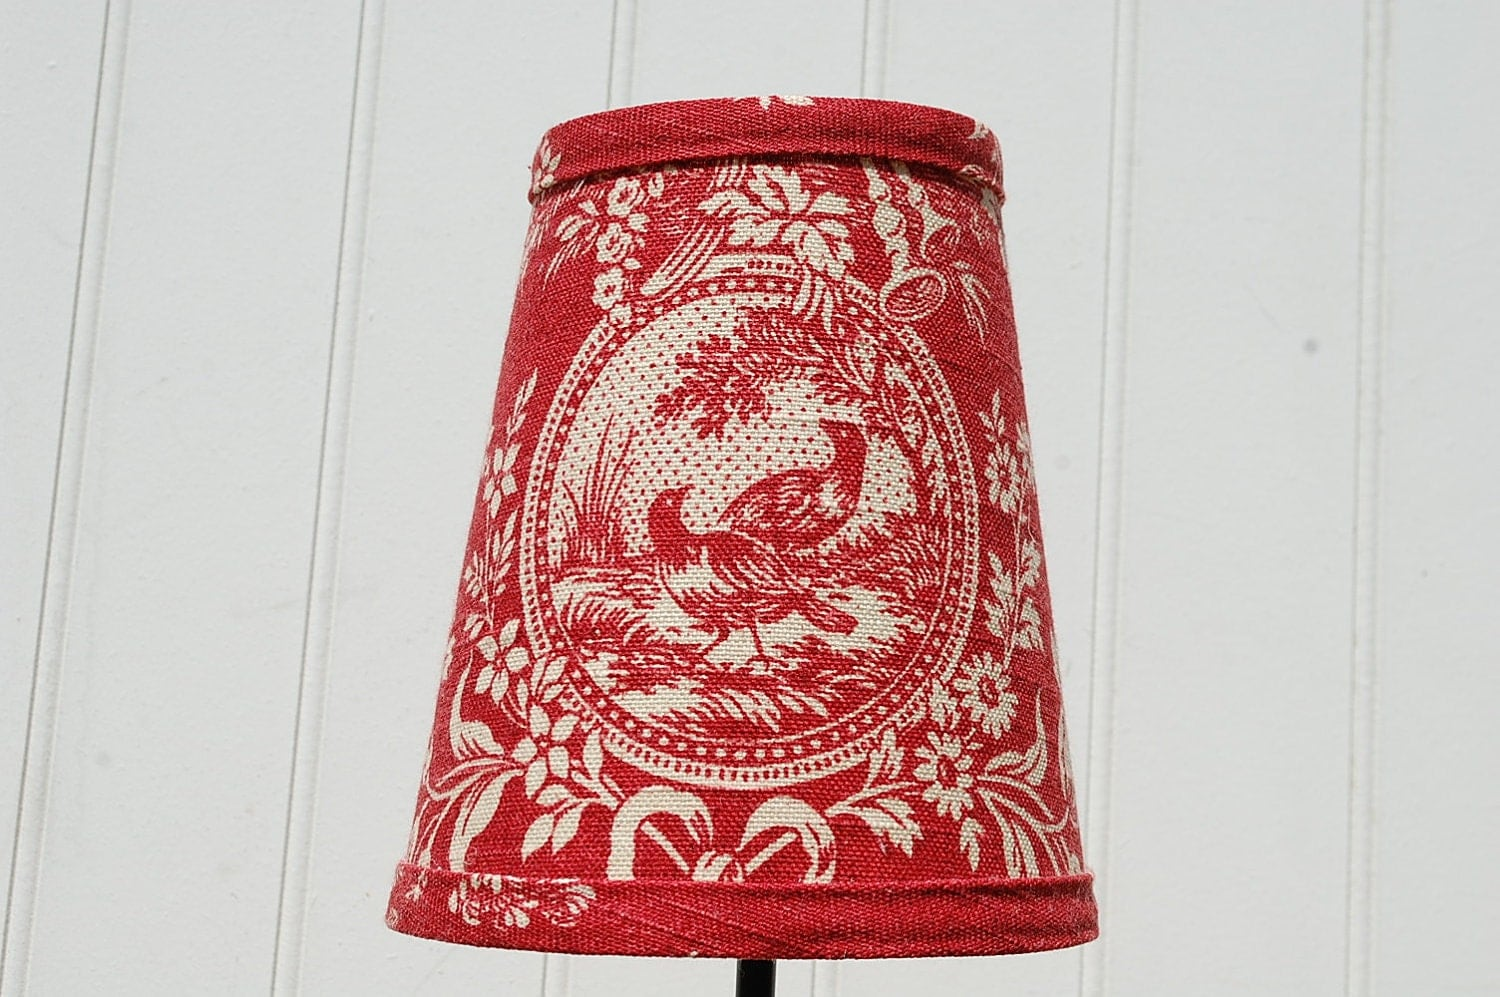 Clip on lamp shade – Toile Chandelier Shades